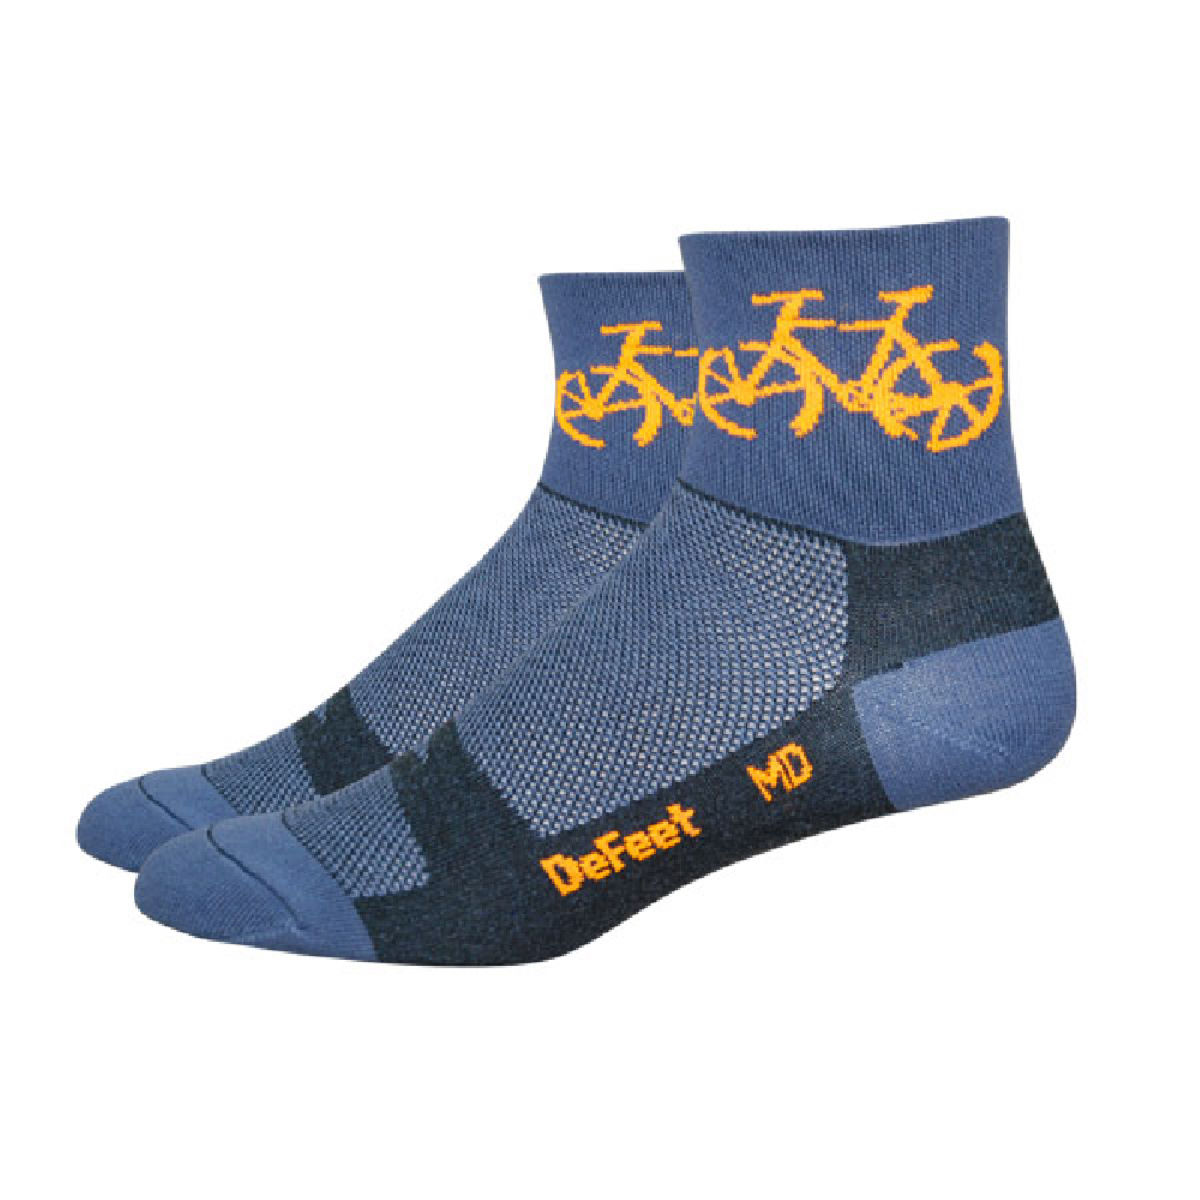 Chaussettes DeFeet Aireator Townee - S Graphite/Orange Chaussettes